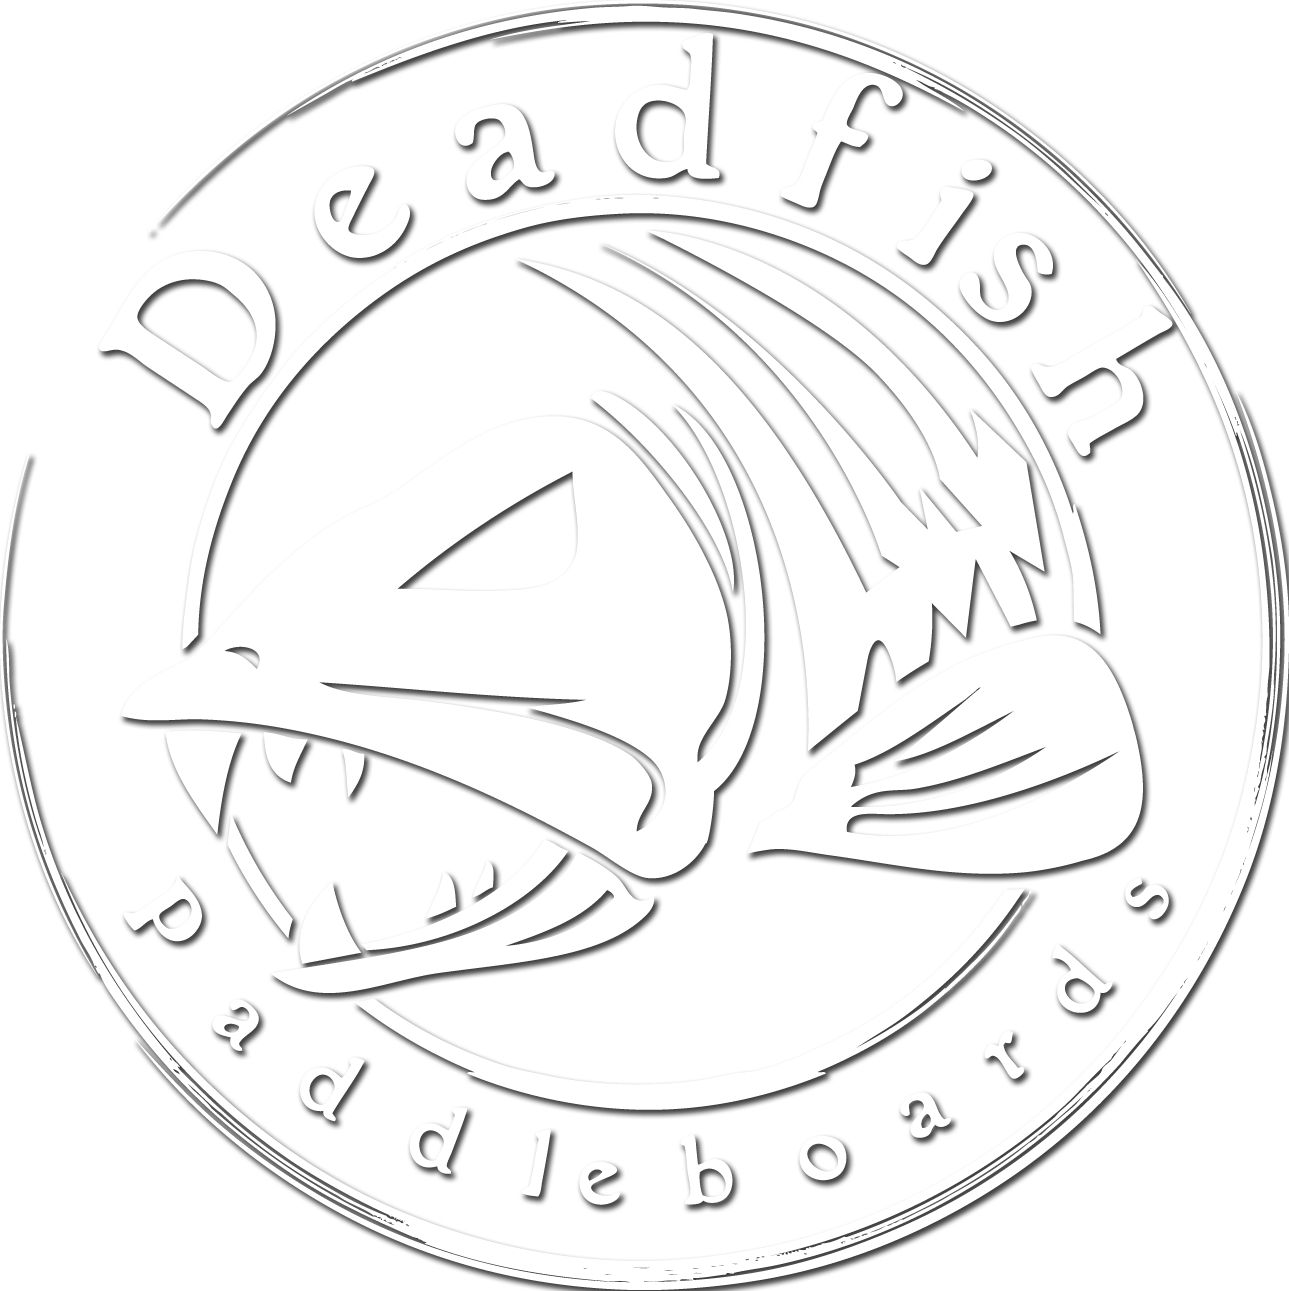 Dead fish clipart transparent image black and white stock Dead Fish Drawing at GetDrawings.com | Free for personal use Dead ... image black and white stock